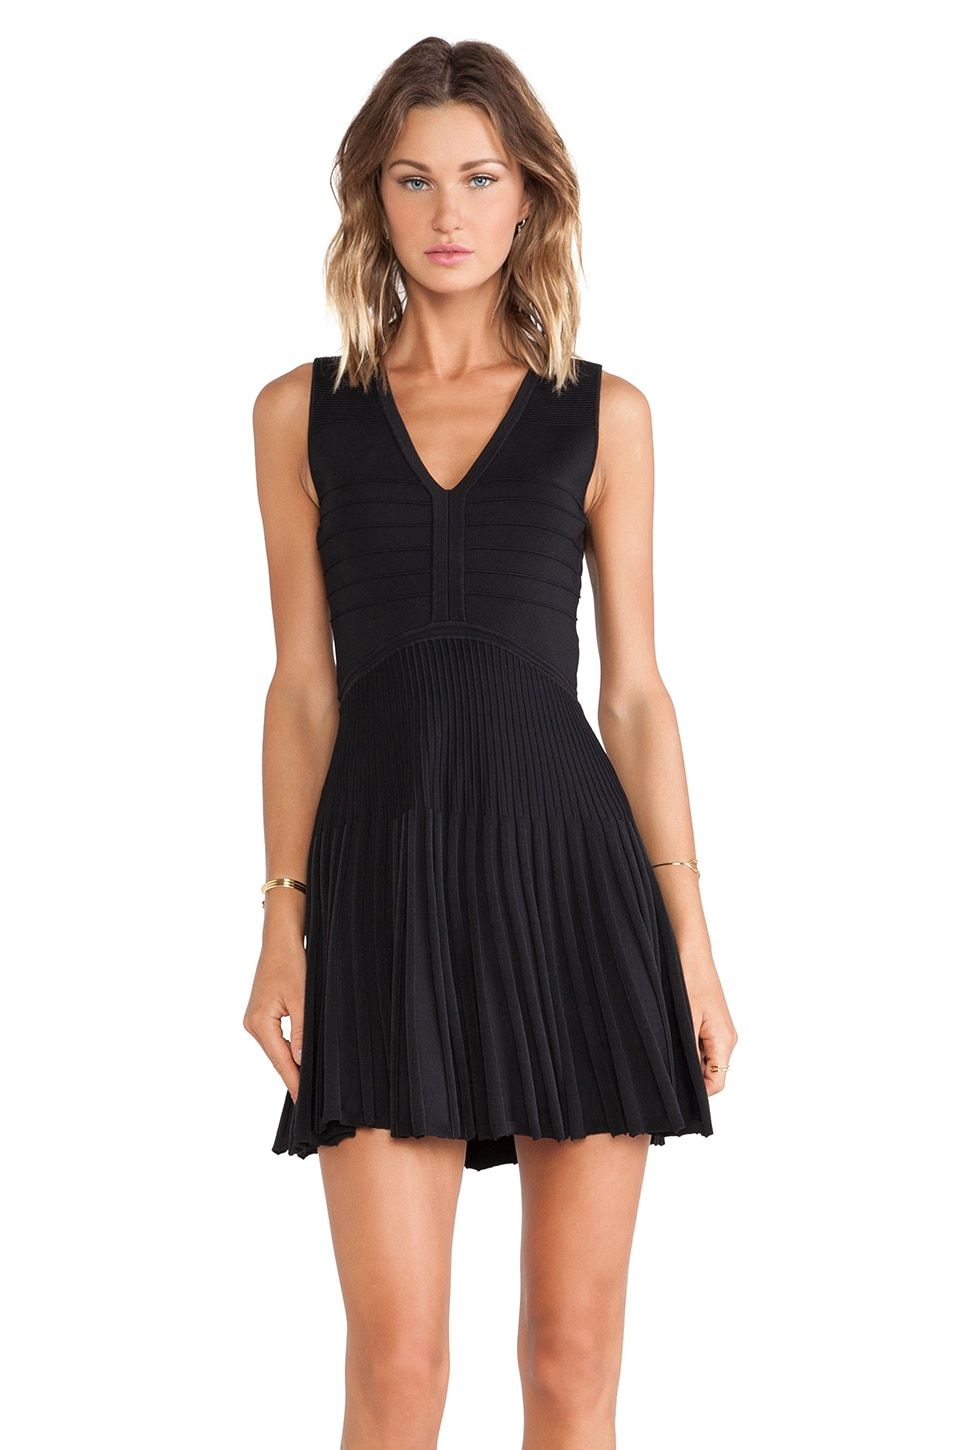 Diane von Furstenberg Fit and Flare Dress in Black